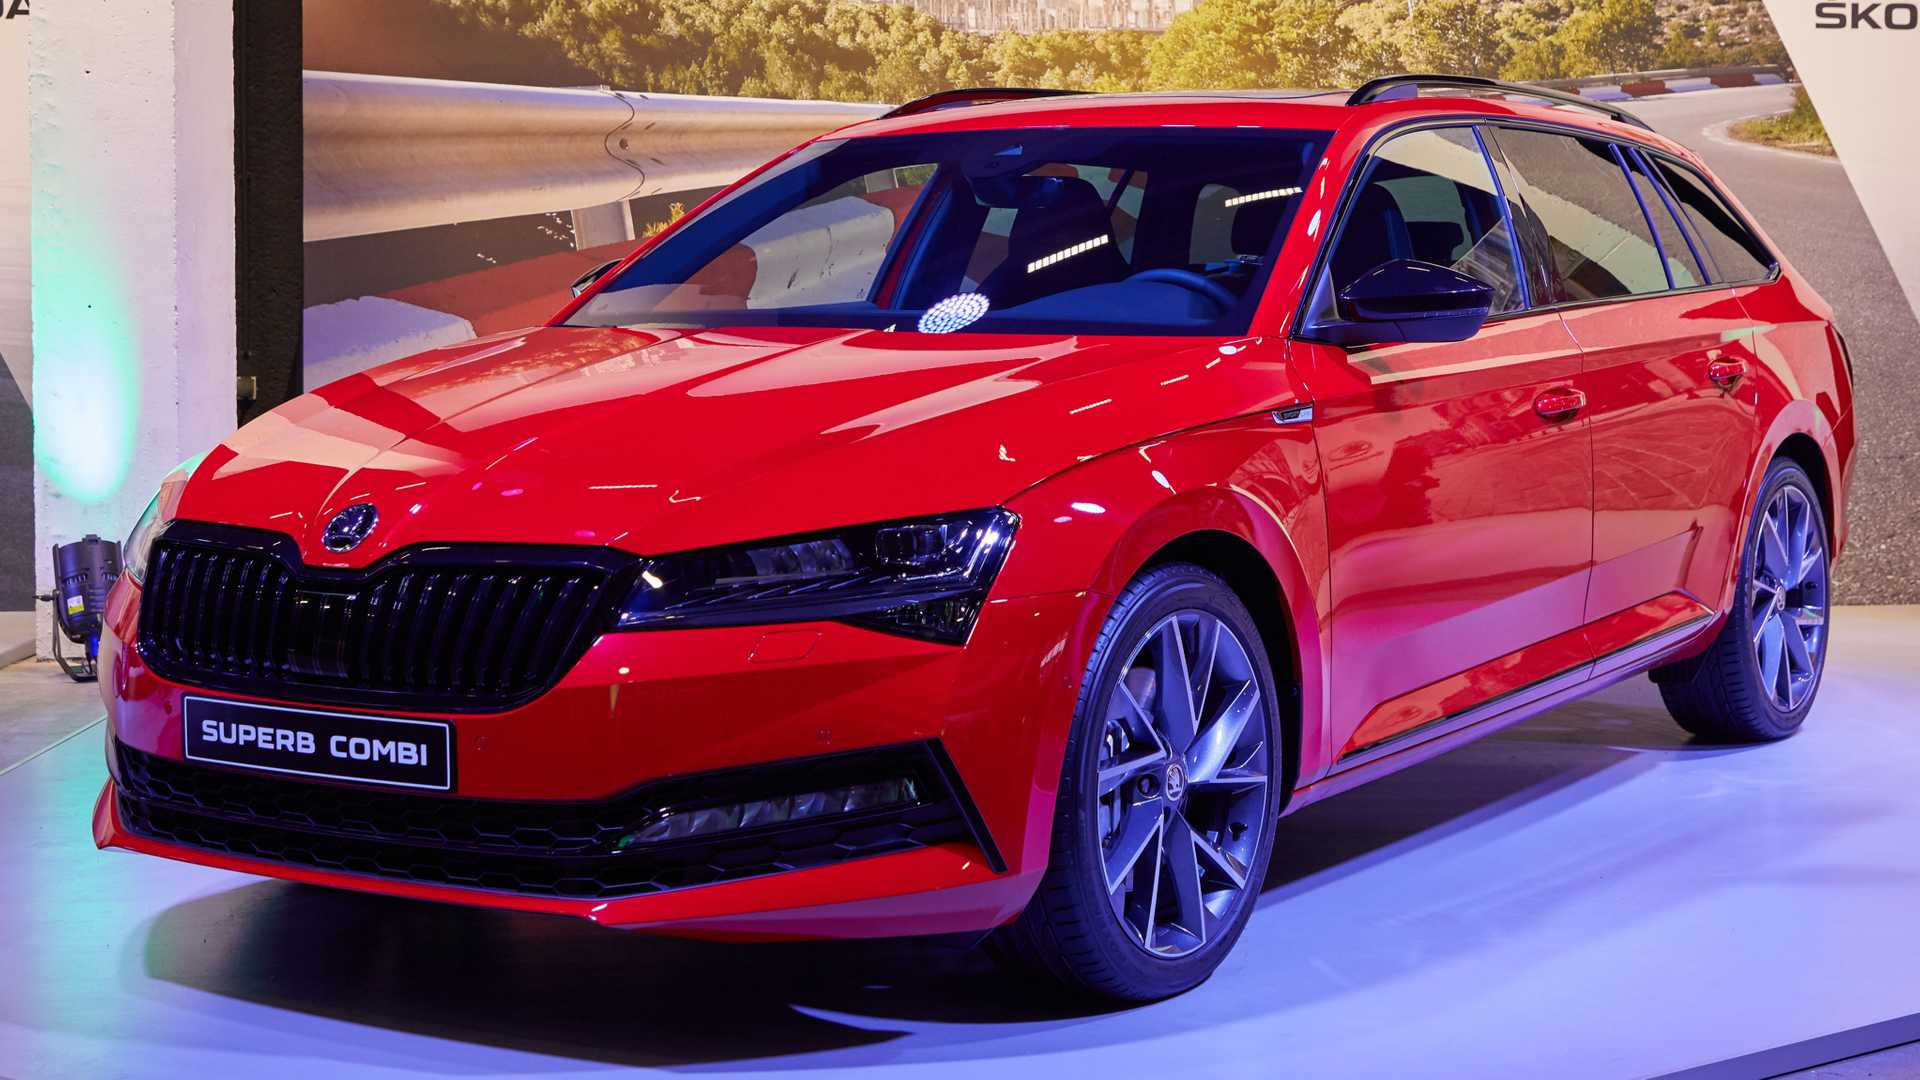 2020 Skoda Superb Facelift Goes Official With Plug-In Hybrid